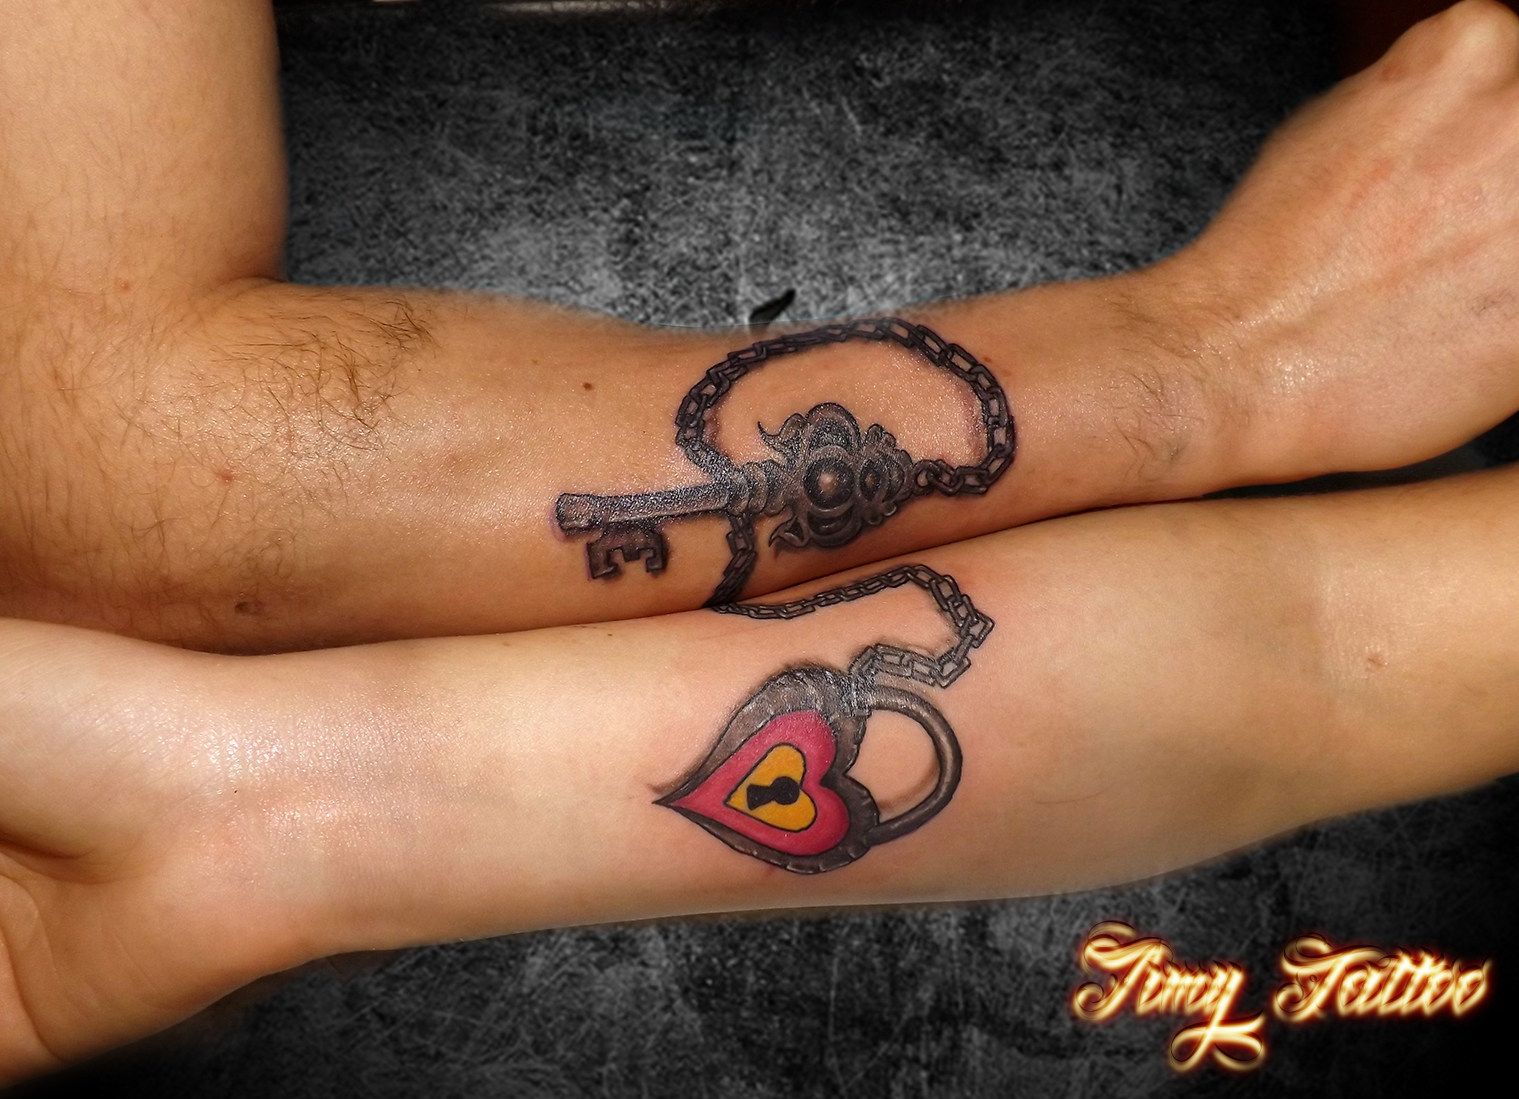 Jimy tattoo for Tattoos for her